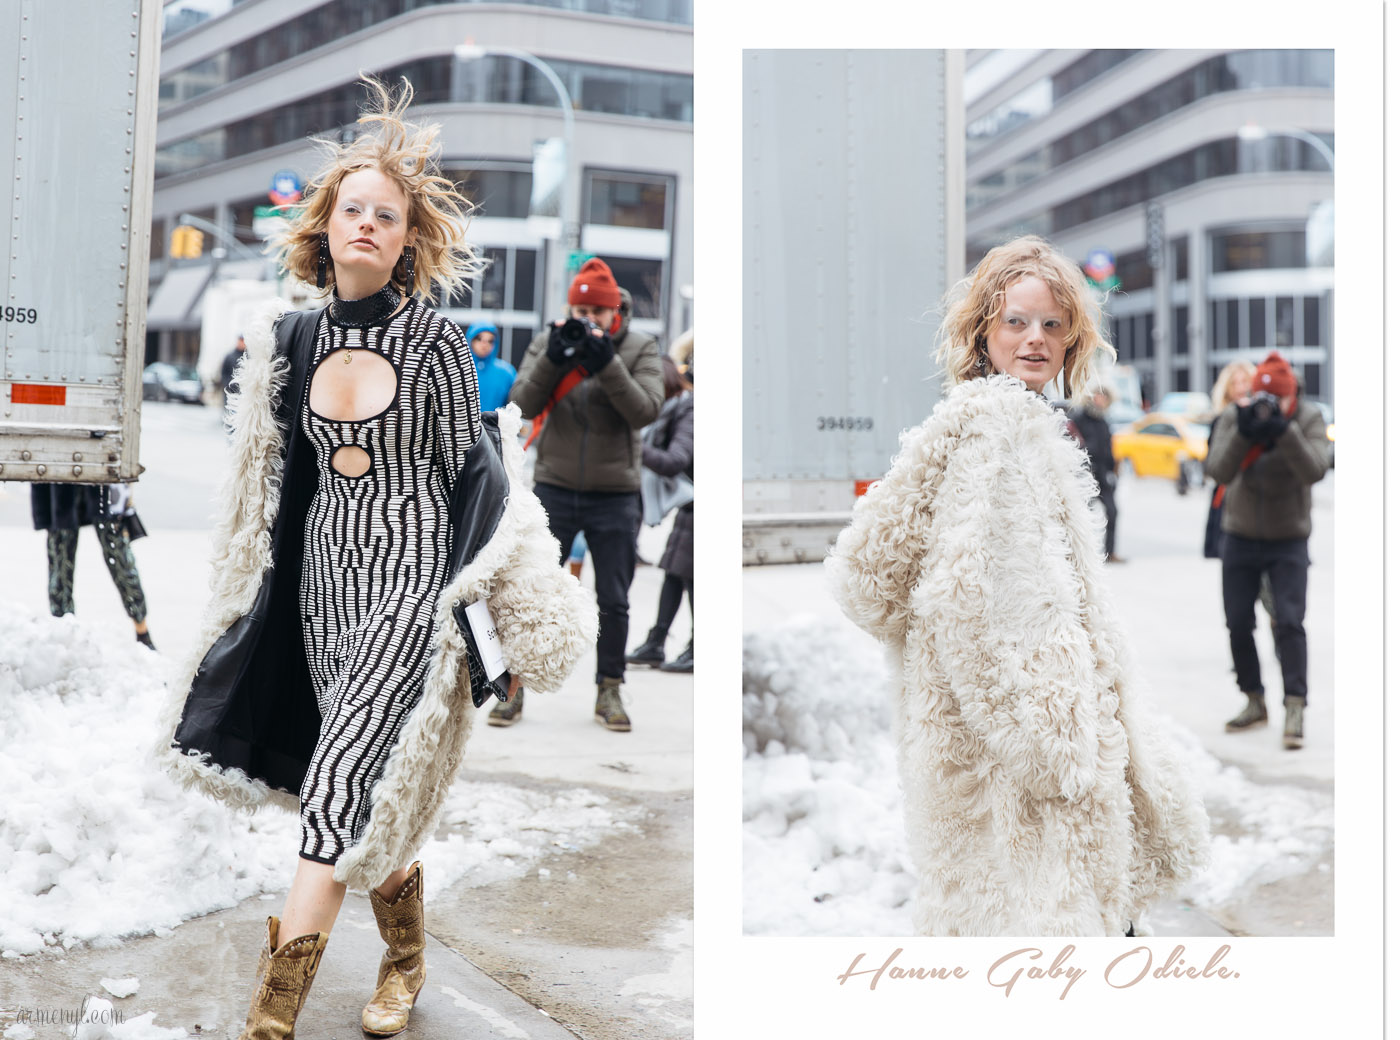 Fashion Model/ Activist Hanne Gaby Odiele in Proenza Schouler at the Proenza Schouler Fall 2017 show in New York, New York, February 2017 Street style Photographed by Armenyl.com